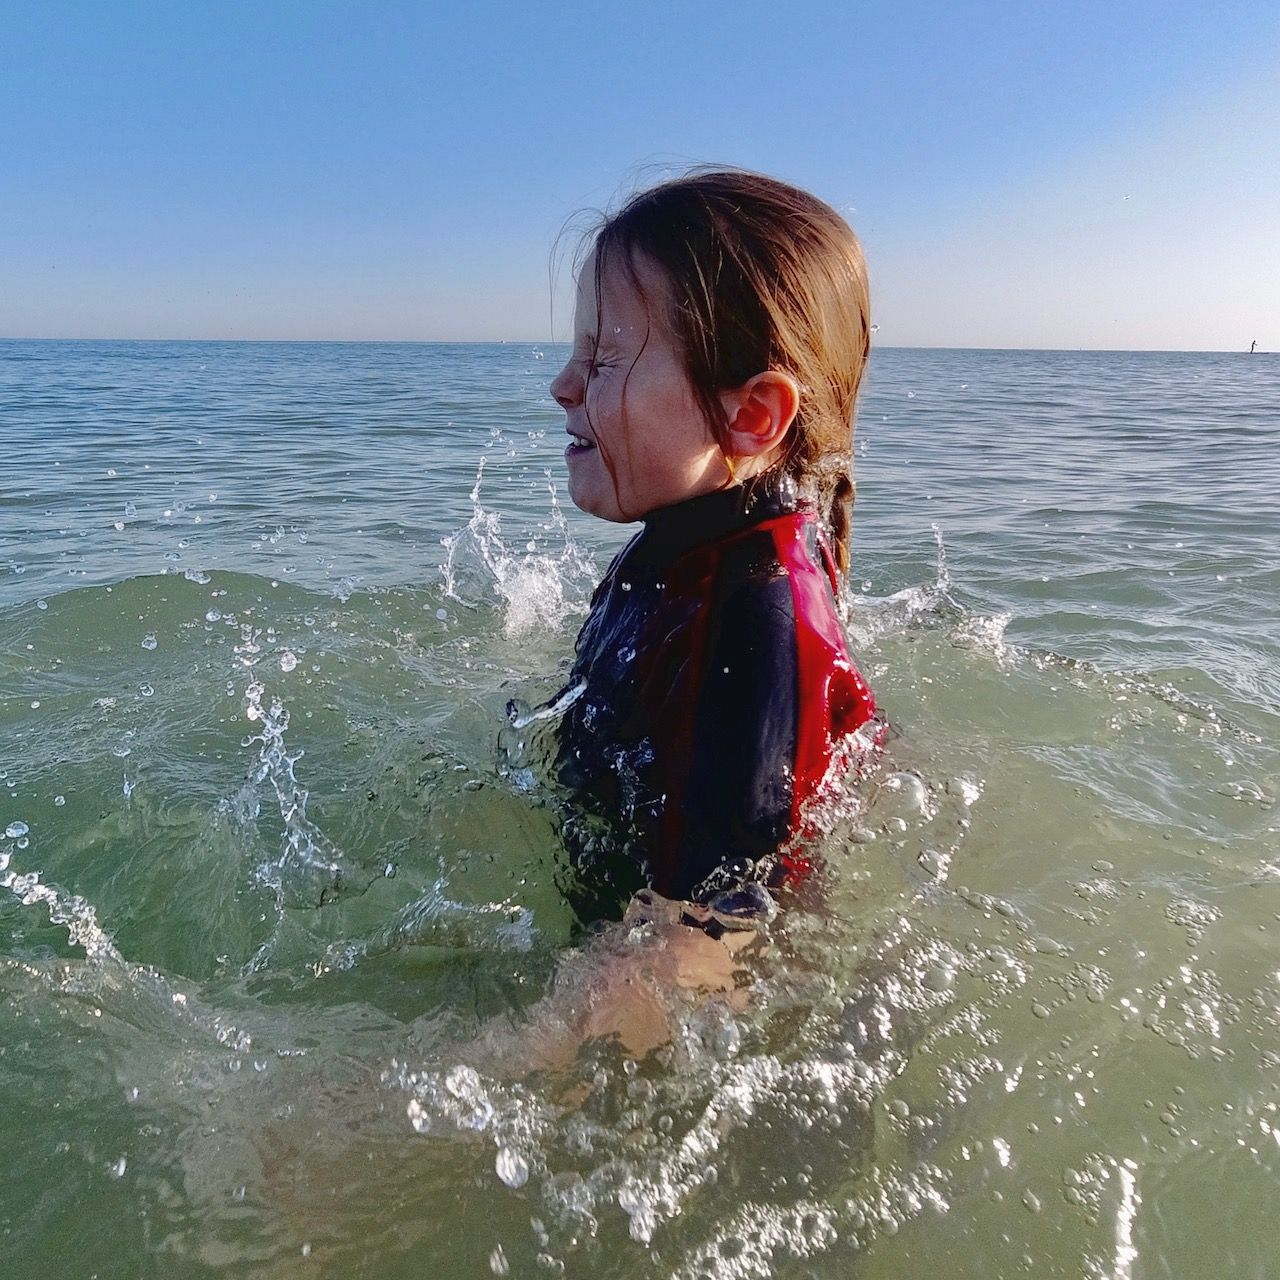 A girl swimming in the Sussex sea